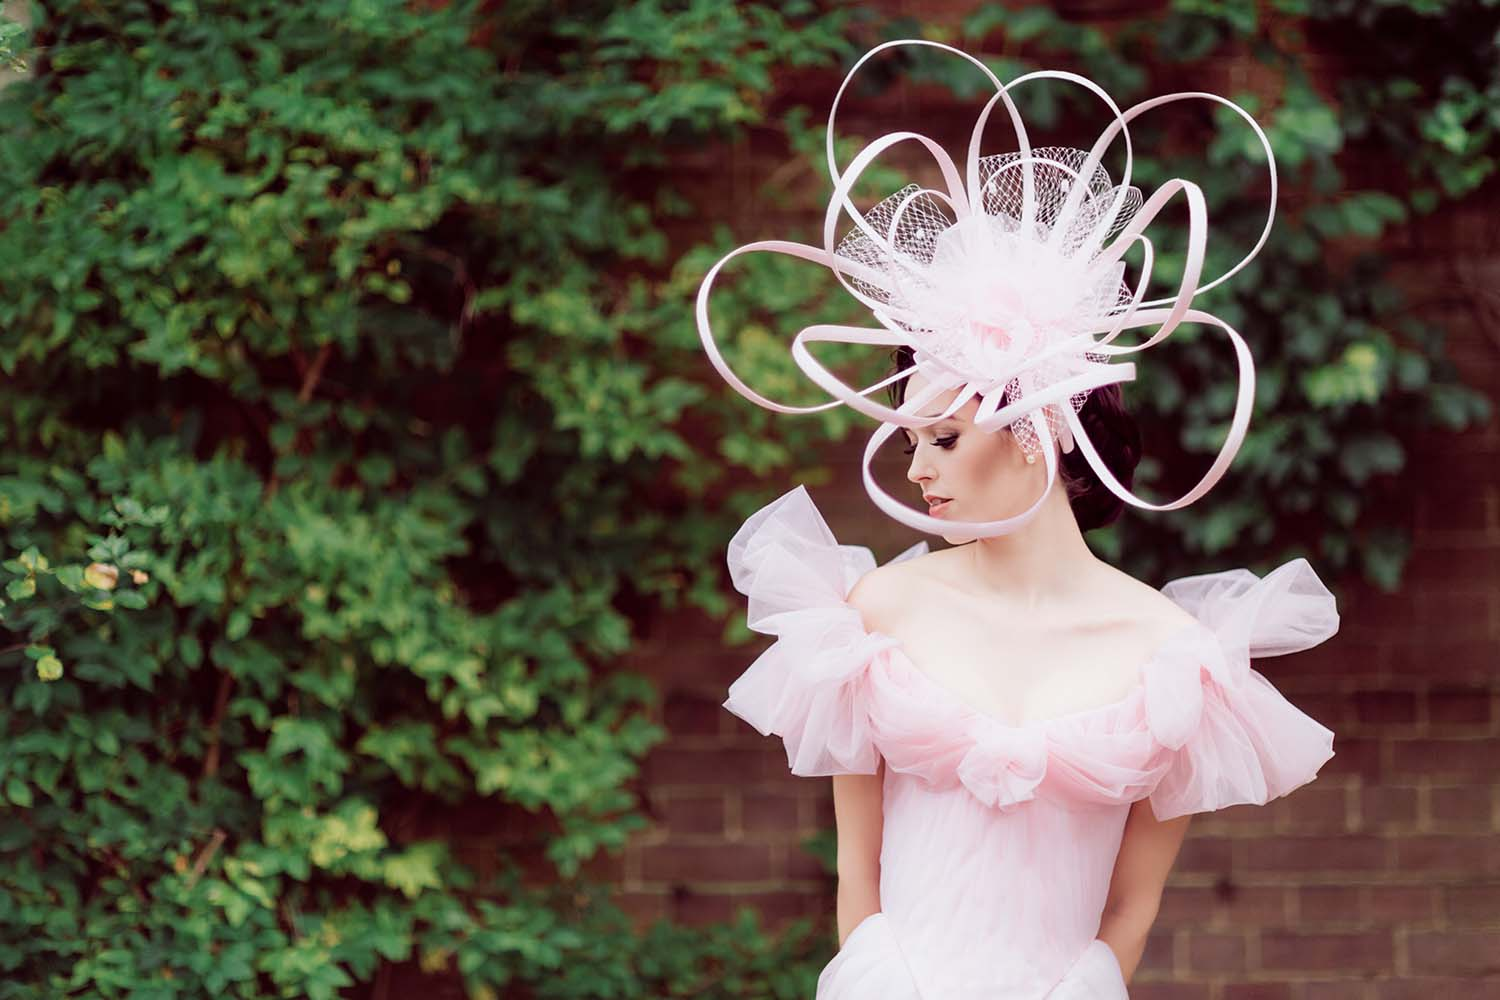 Styled Shoot: Utterly Romantic Pink Couture Wedding Dress And Accessories By Chantal Mallett